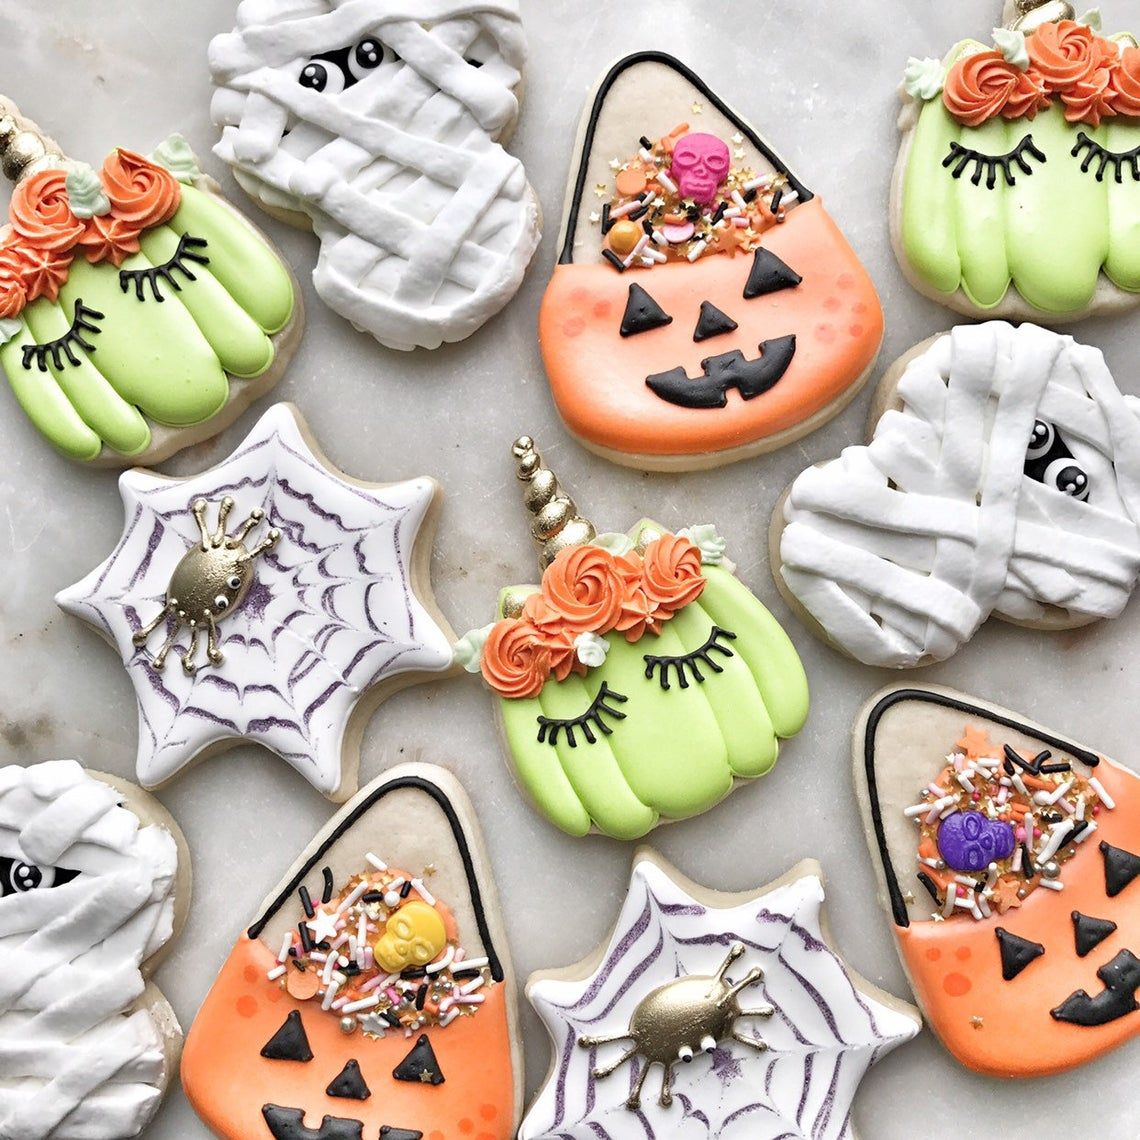 Trick Or Treat Buckets, Spider Web, Pumpkin Unicorn, Mummy Halloween Iced Sugar Cookies by Royally Iced Sweets on TheIcedSugarCookie.com